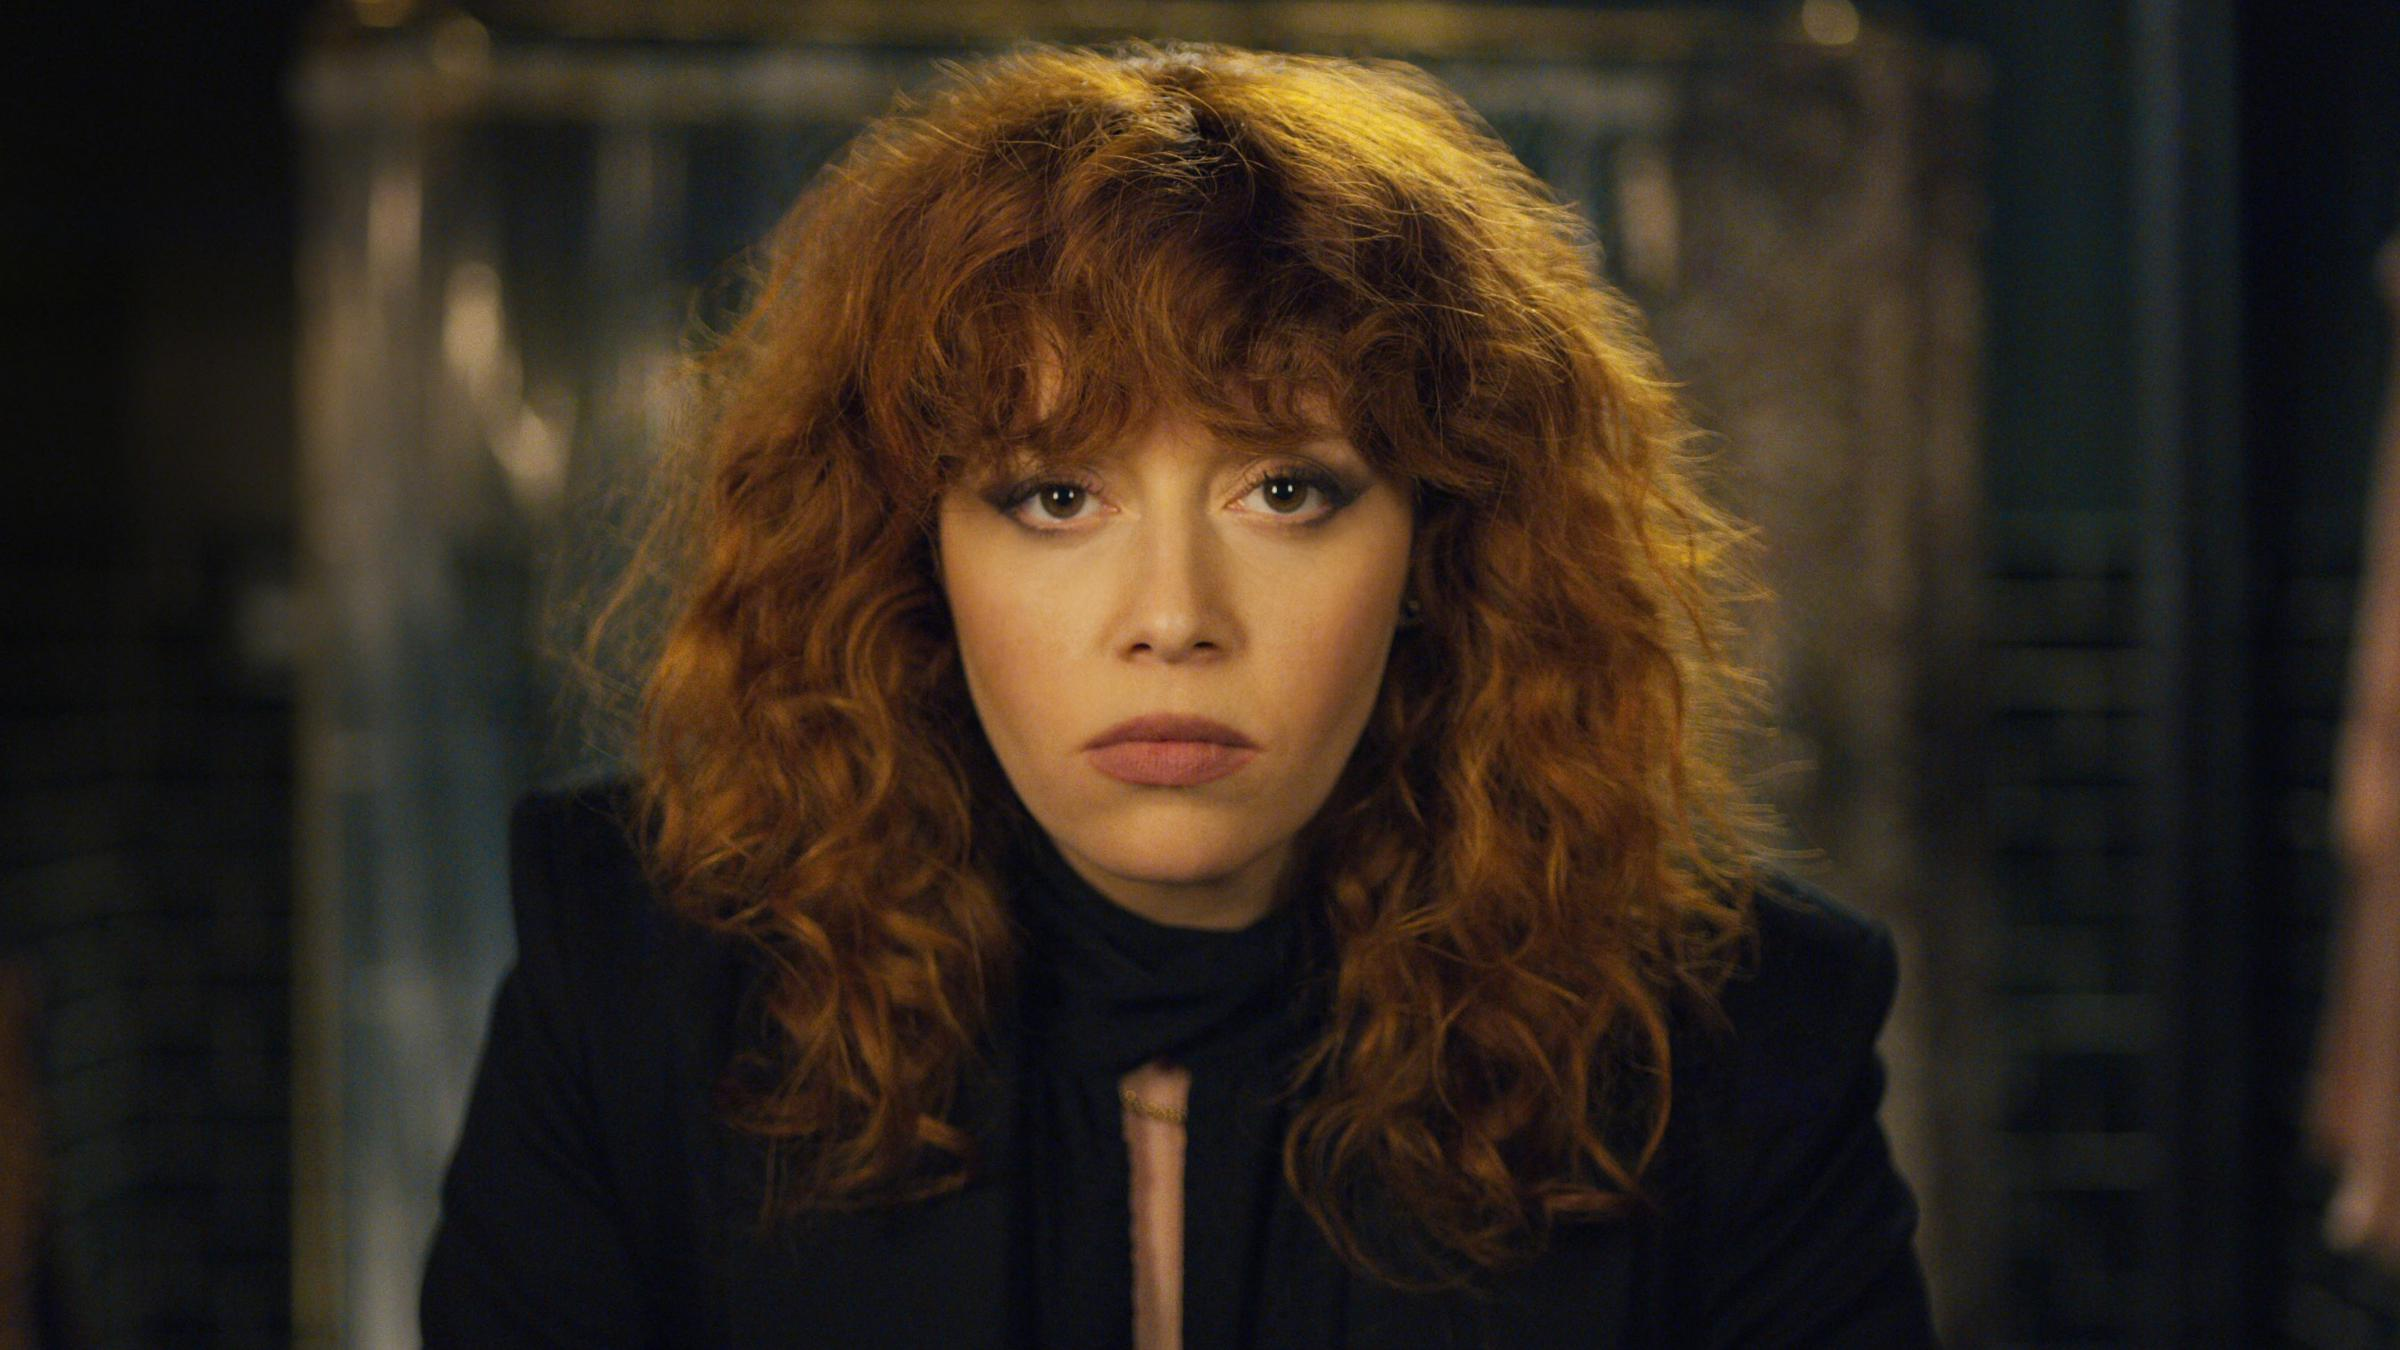 Natasha Lyonne On Being A 'Tough Guy' And Finding Herself Inside